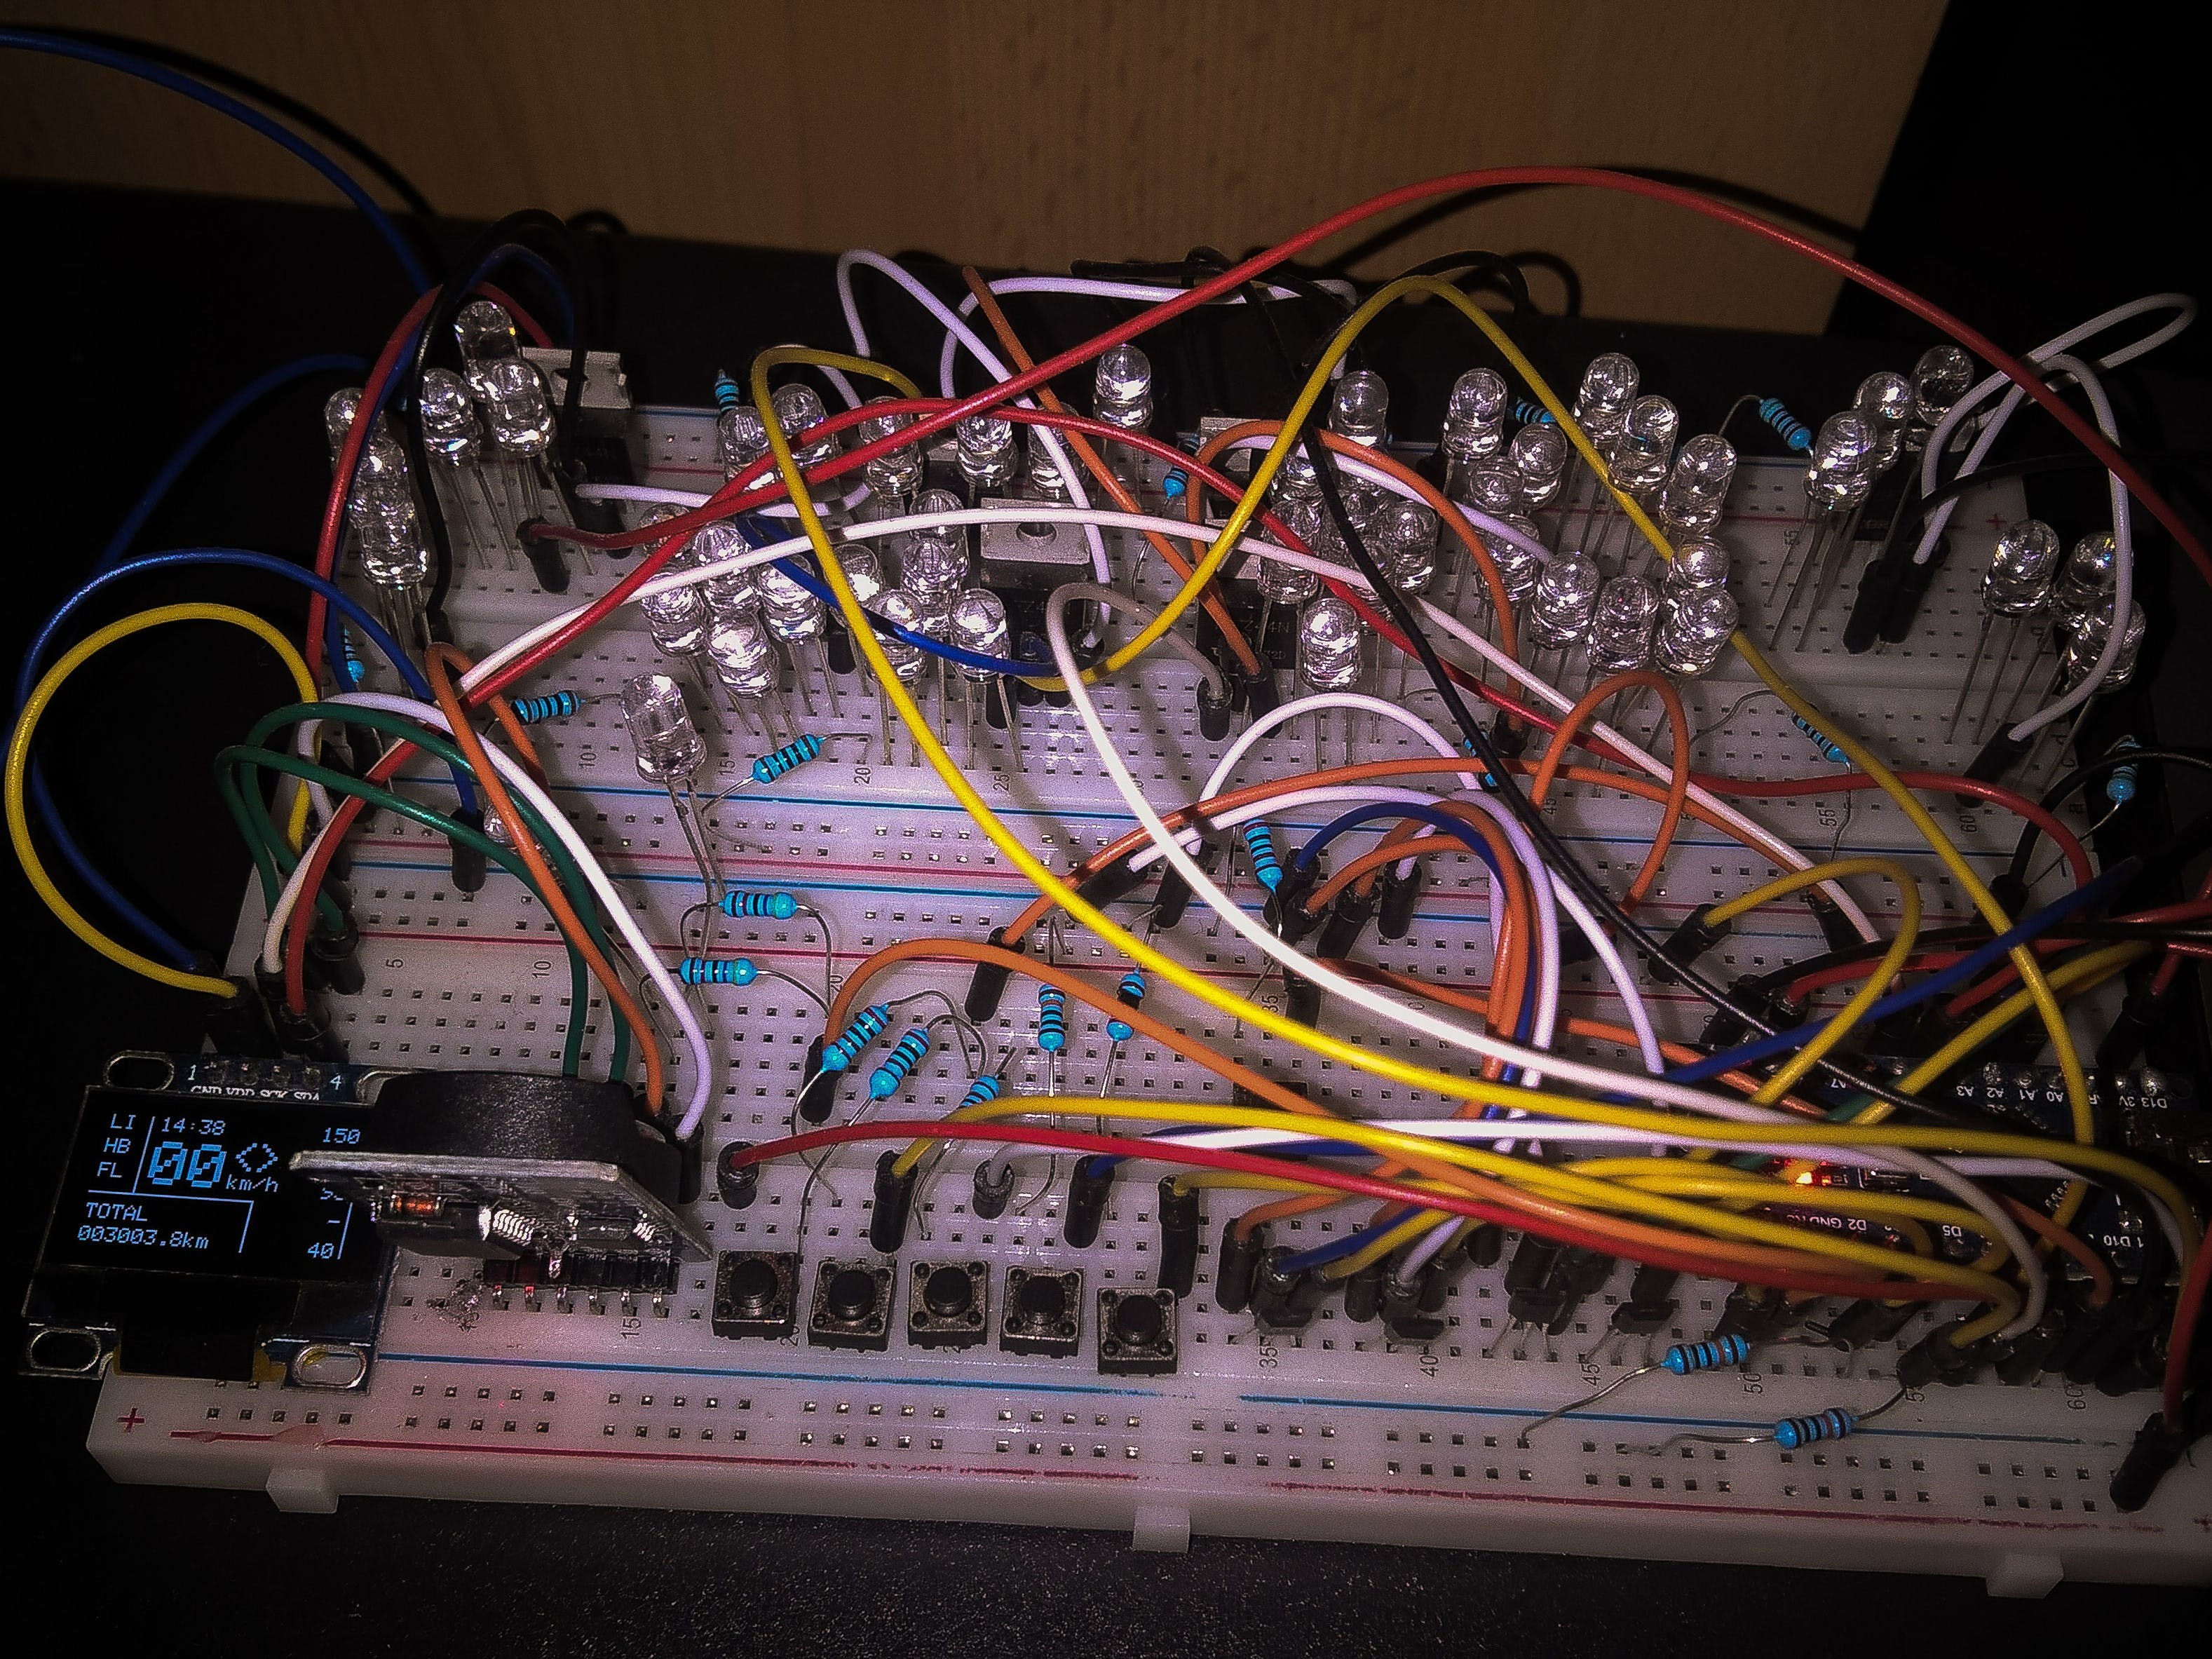 How project looks on breadboard